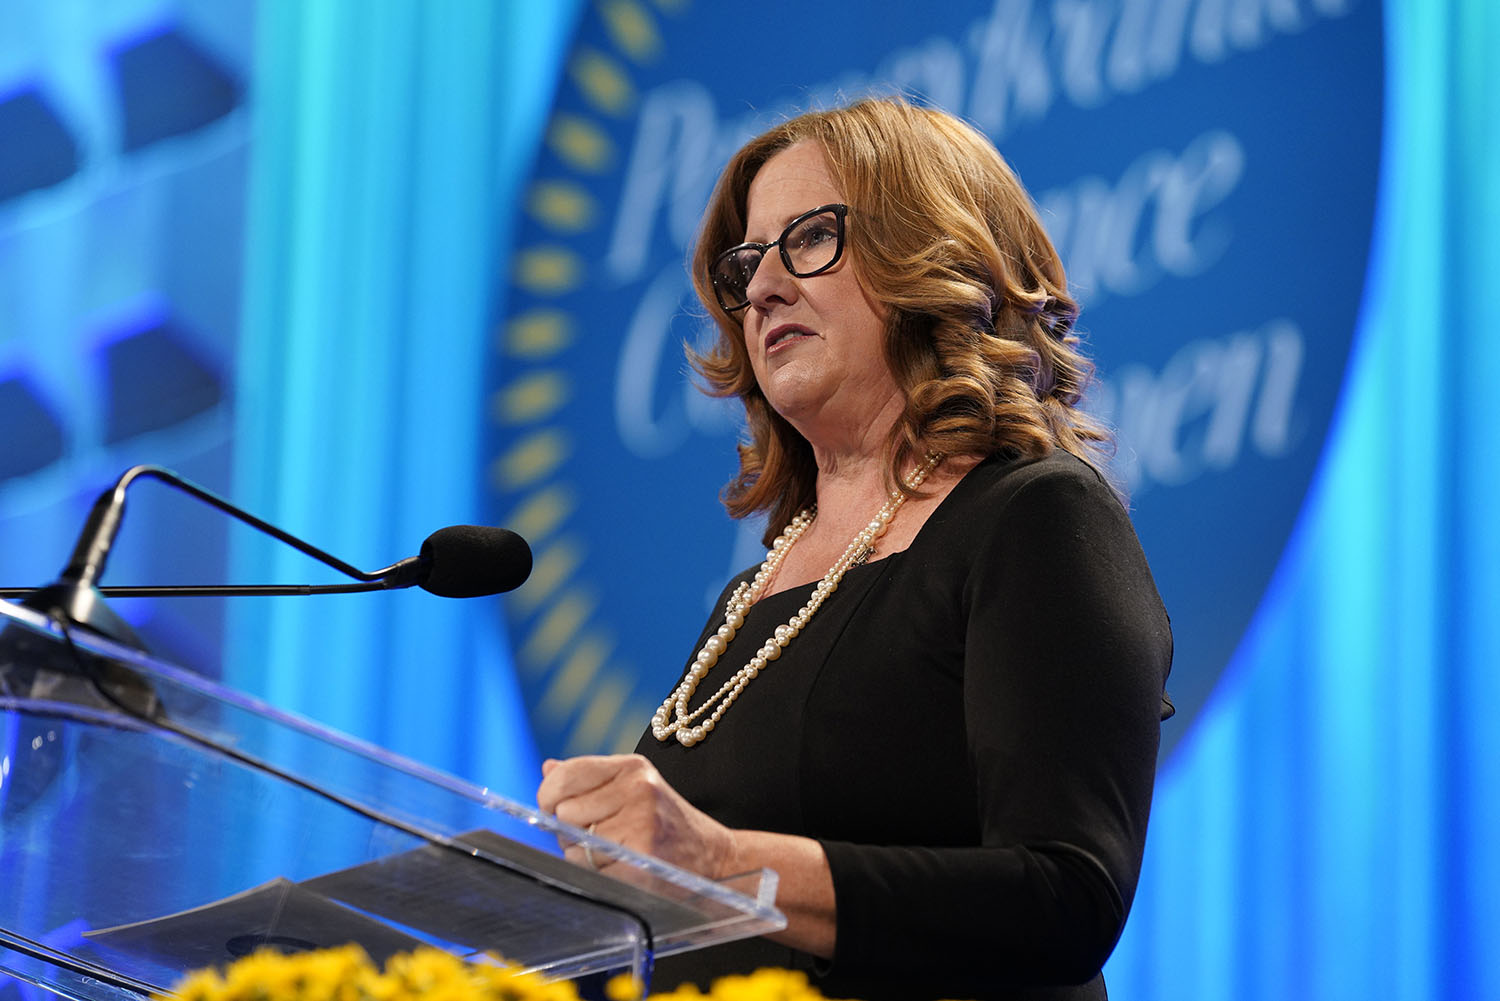 Chief information officer of Qurate Retail Group Karen Etzkorn speaks on stage during Pennsylvania Conference for Women 2018 at Pennsylvania Convention Center on October 12, 2018 in Philadelphia, Pennsylvania.  (Photo by Marla Aufmuth/Getty Images )